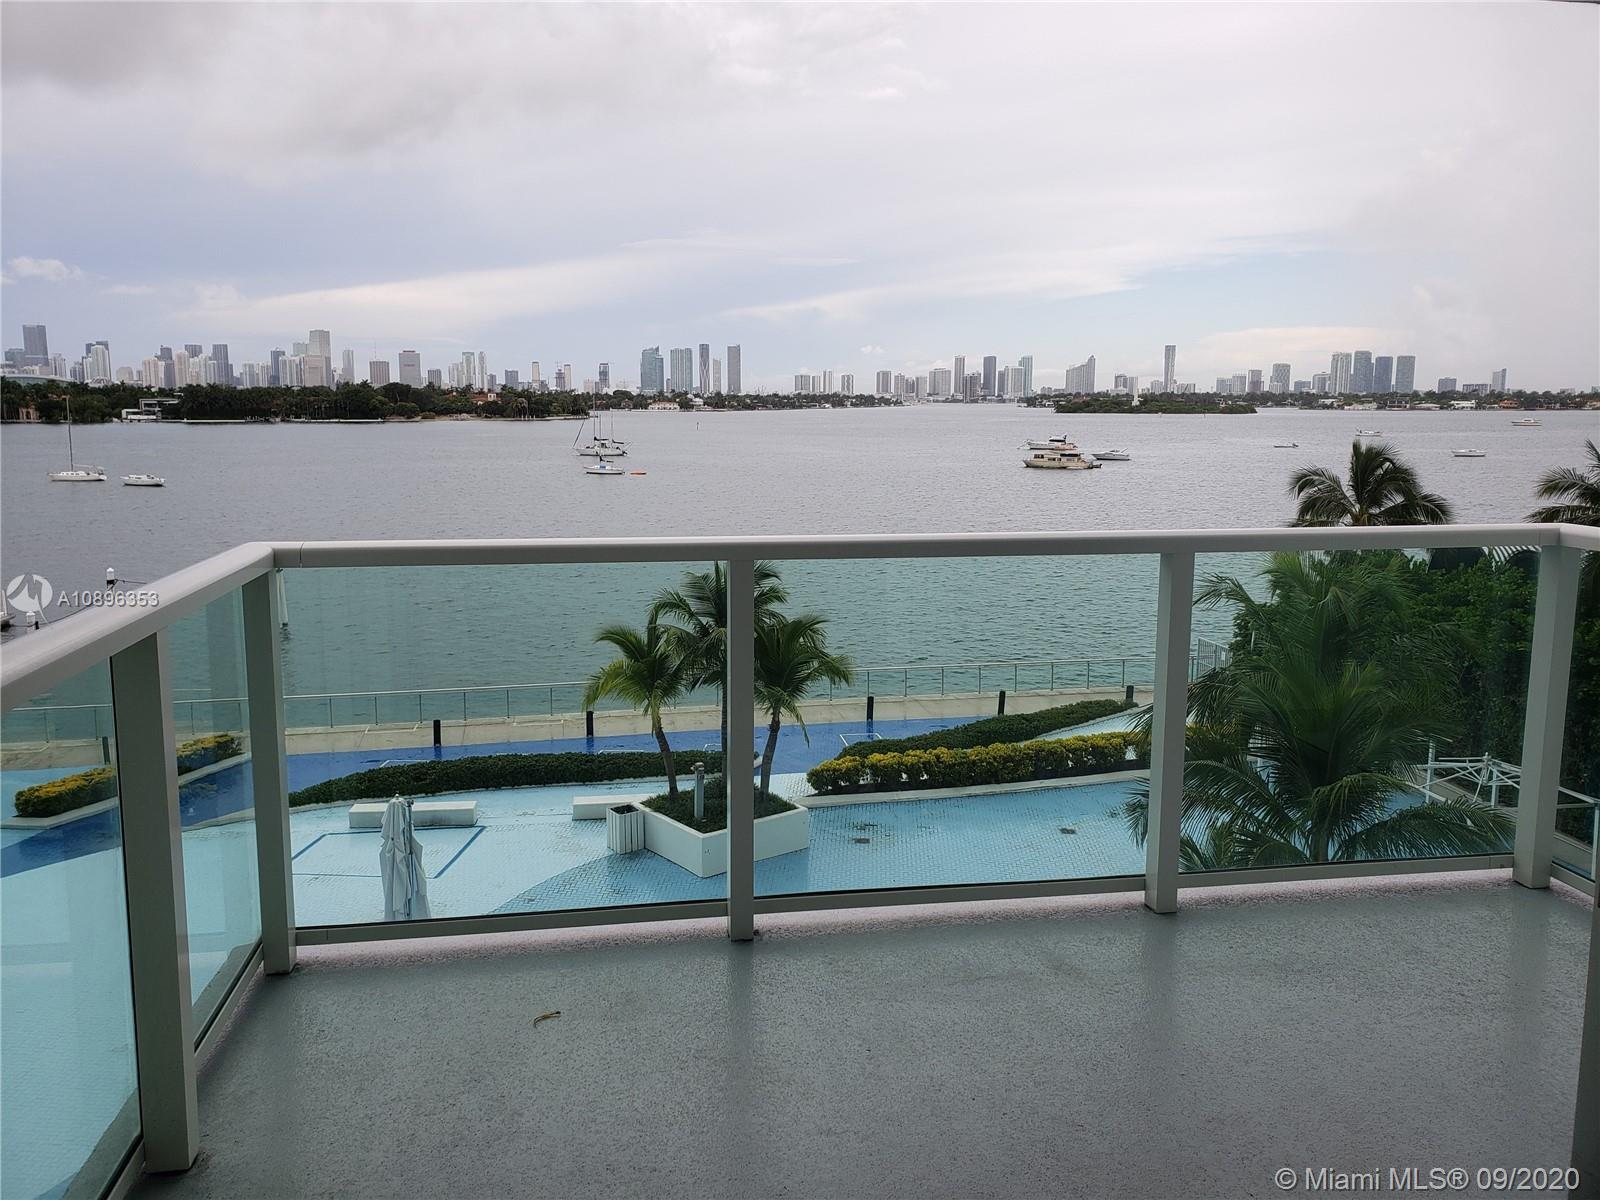 Mirador South #412 - 1000 West Ave #412, Miami Beach, FL 33139